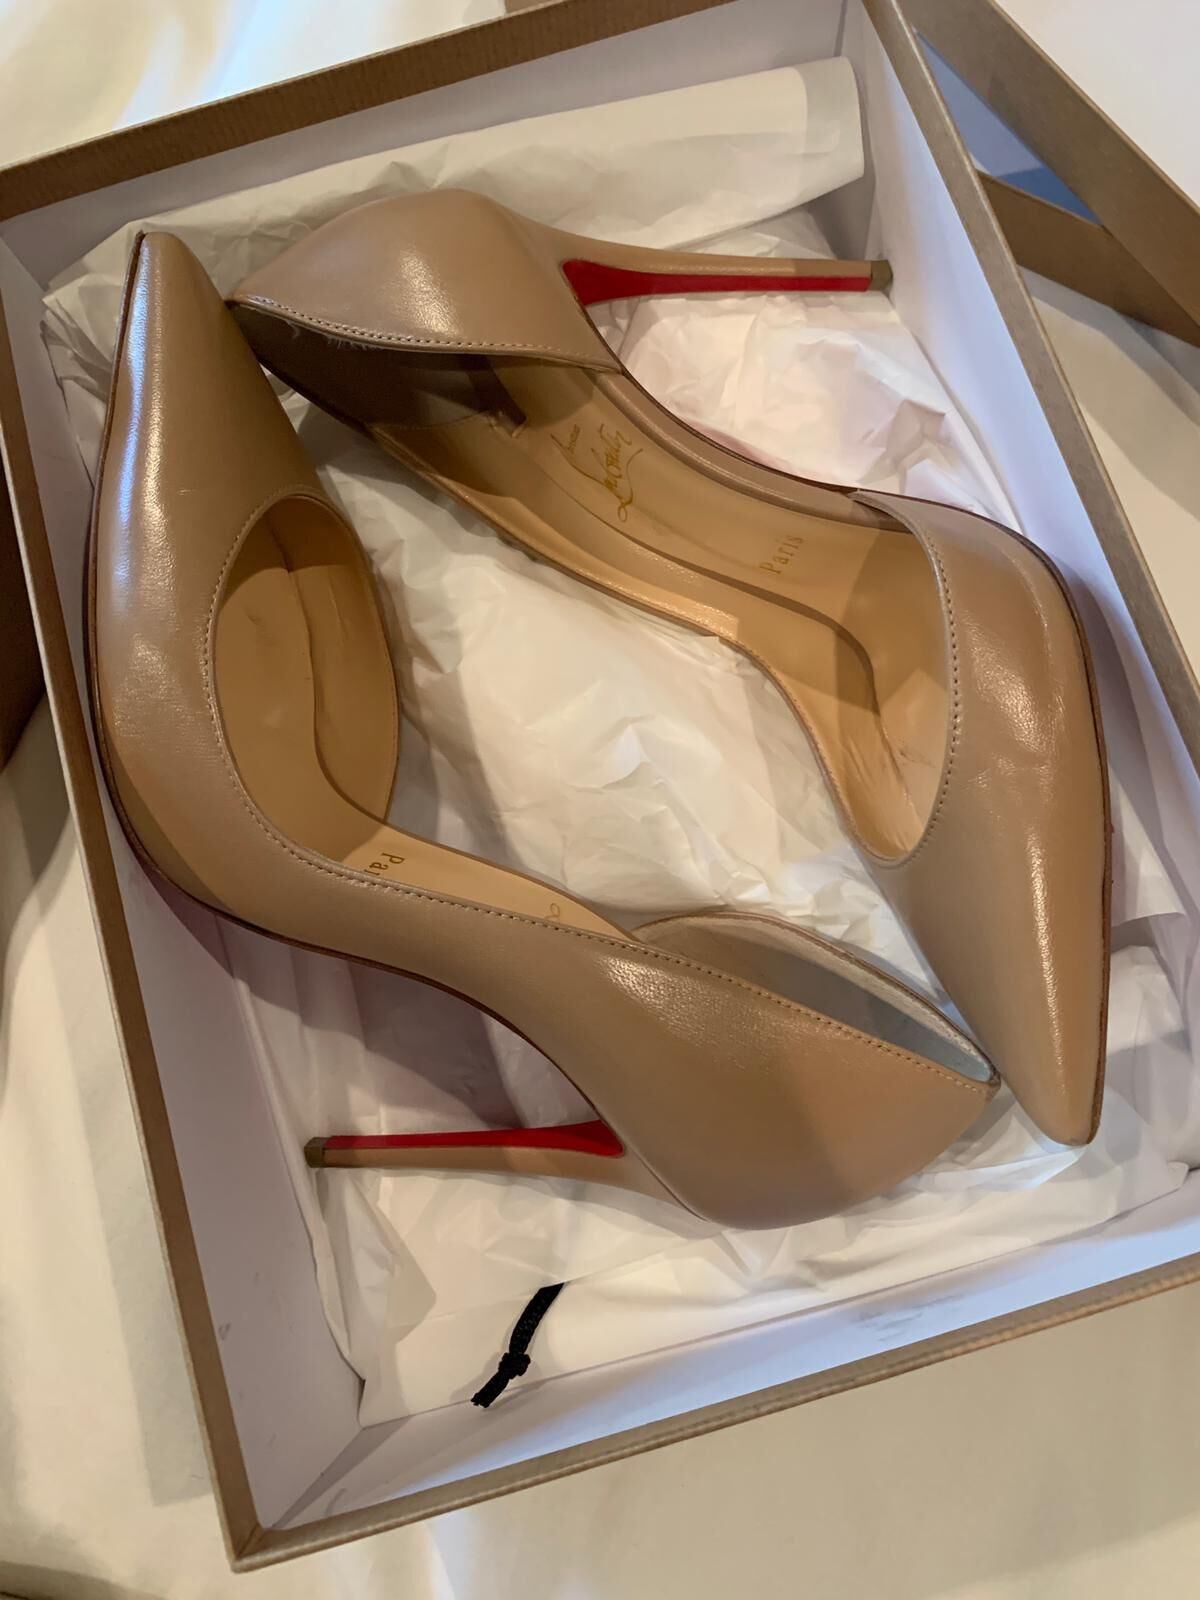 Christian Louboutin Heels Shoes CL8896 Nude